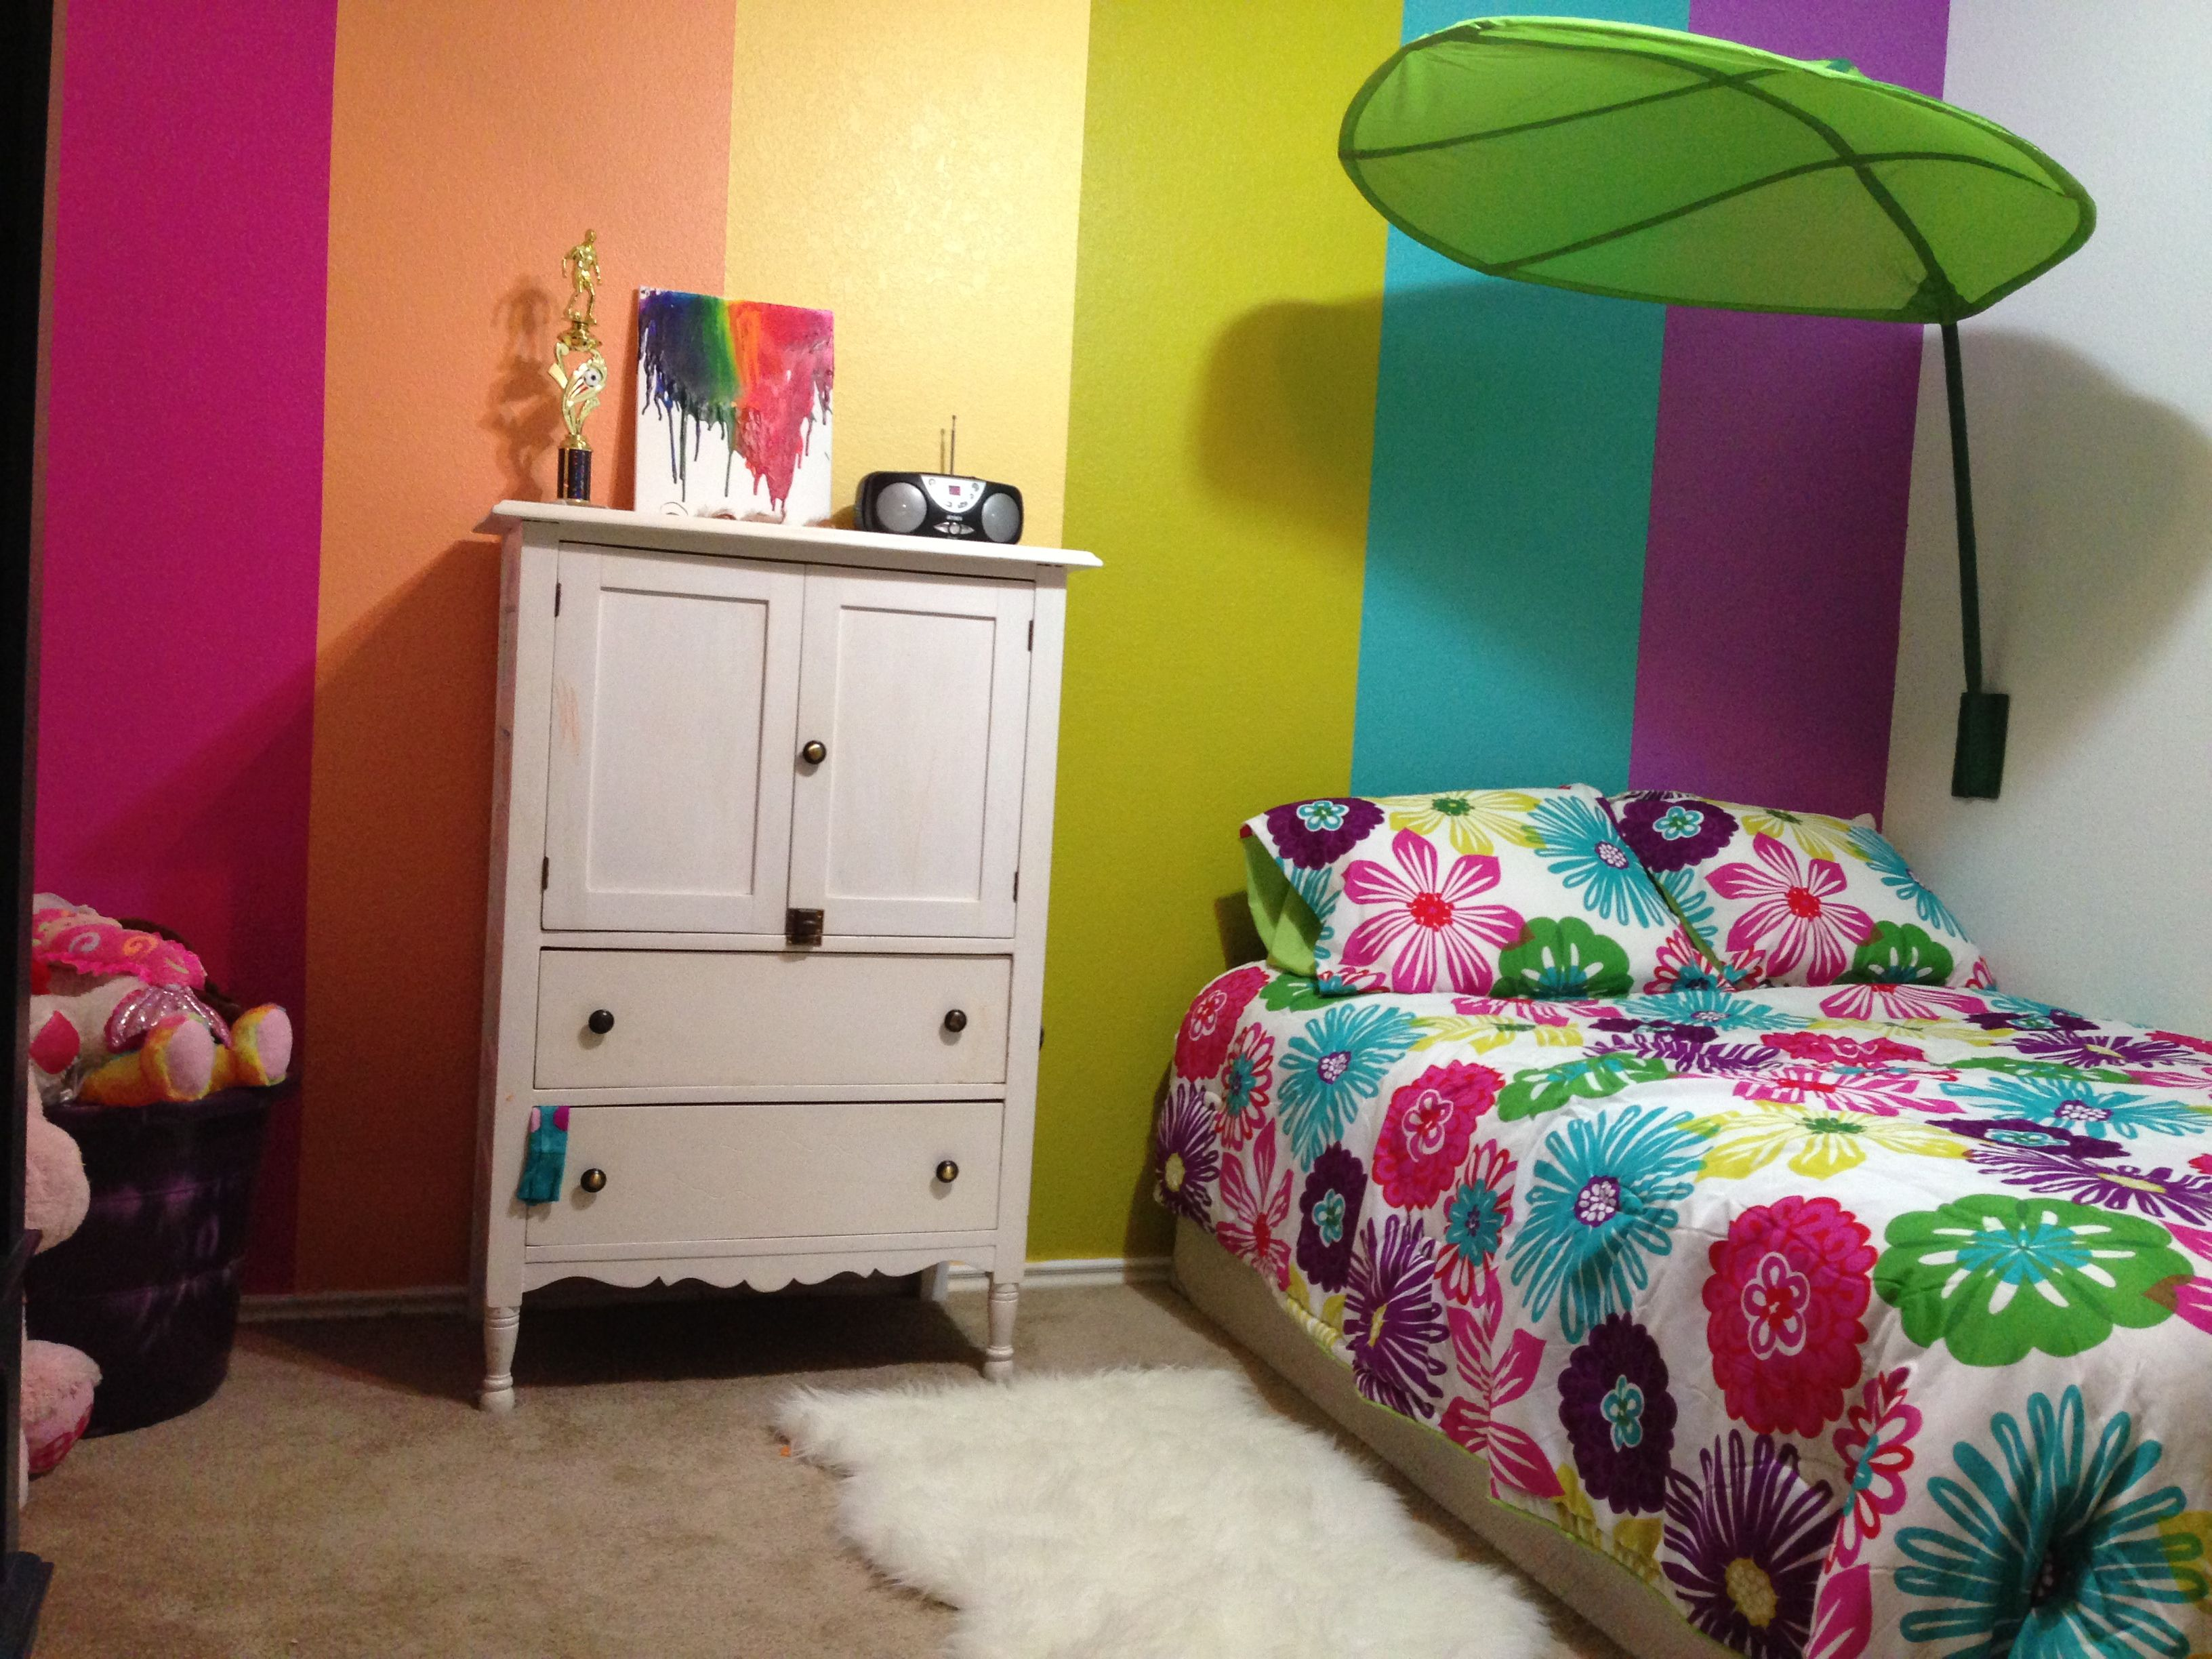 Rainbow Kids Rooms My 5 Year Old 39s Rainbow Room Girls Rooms Kids Bedroom